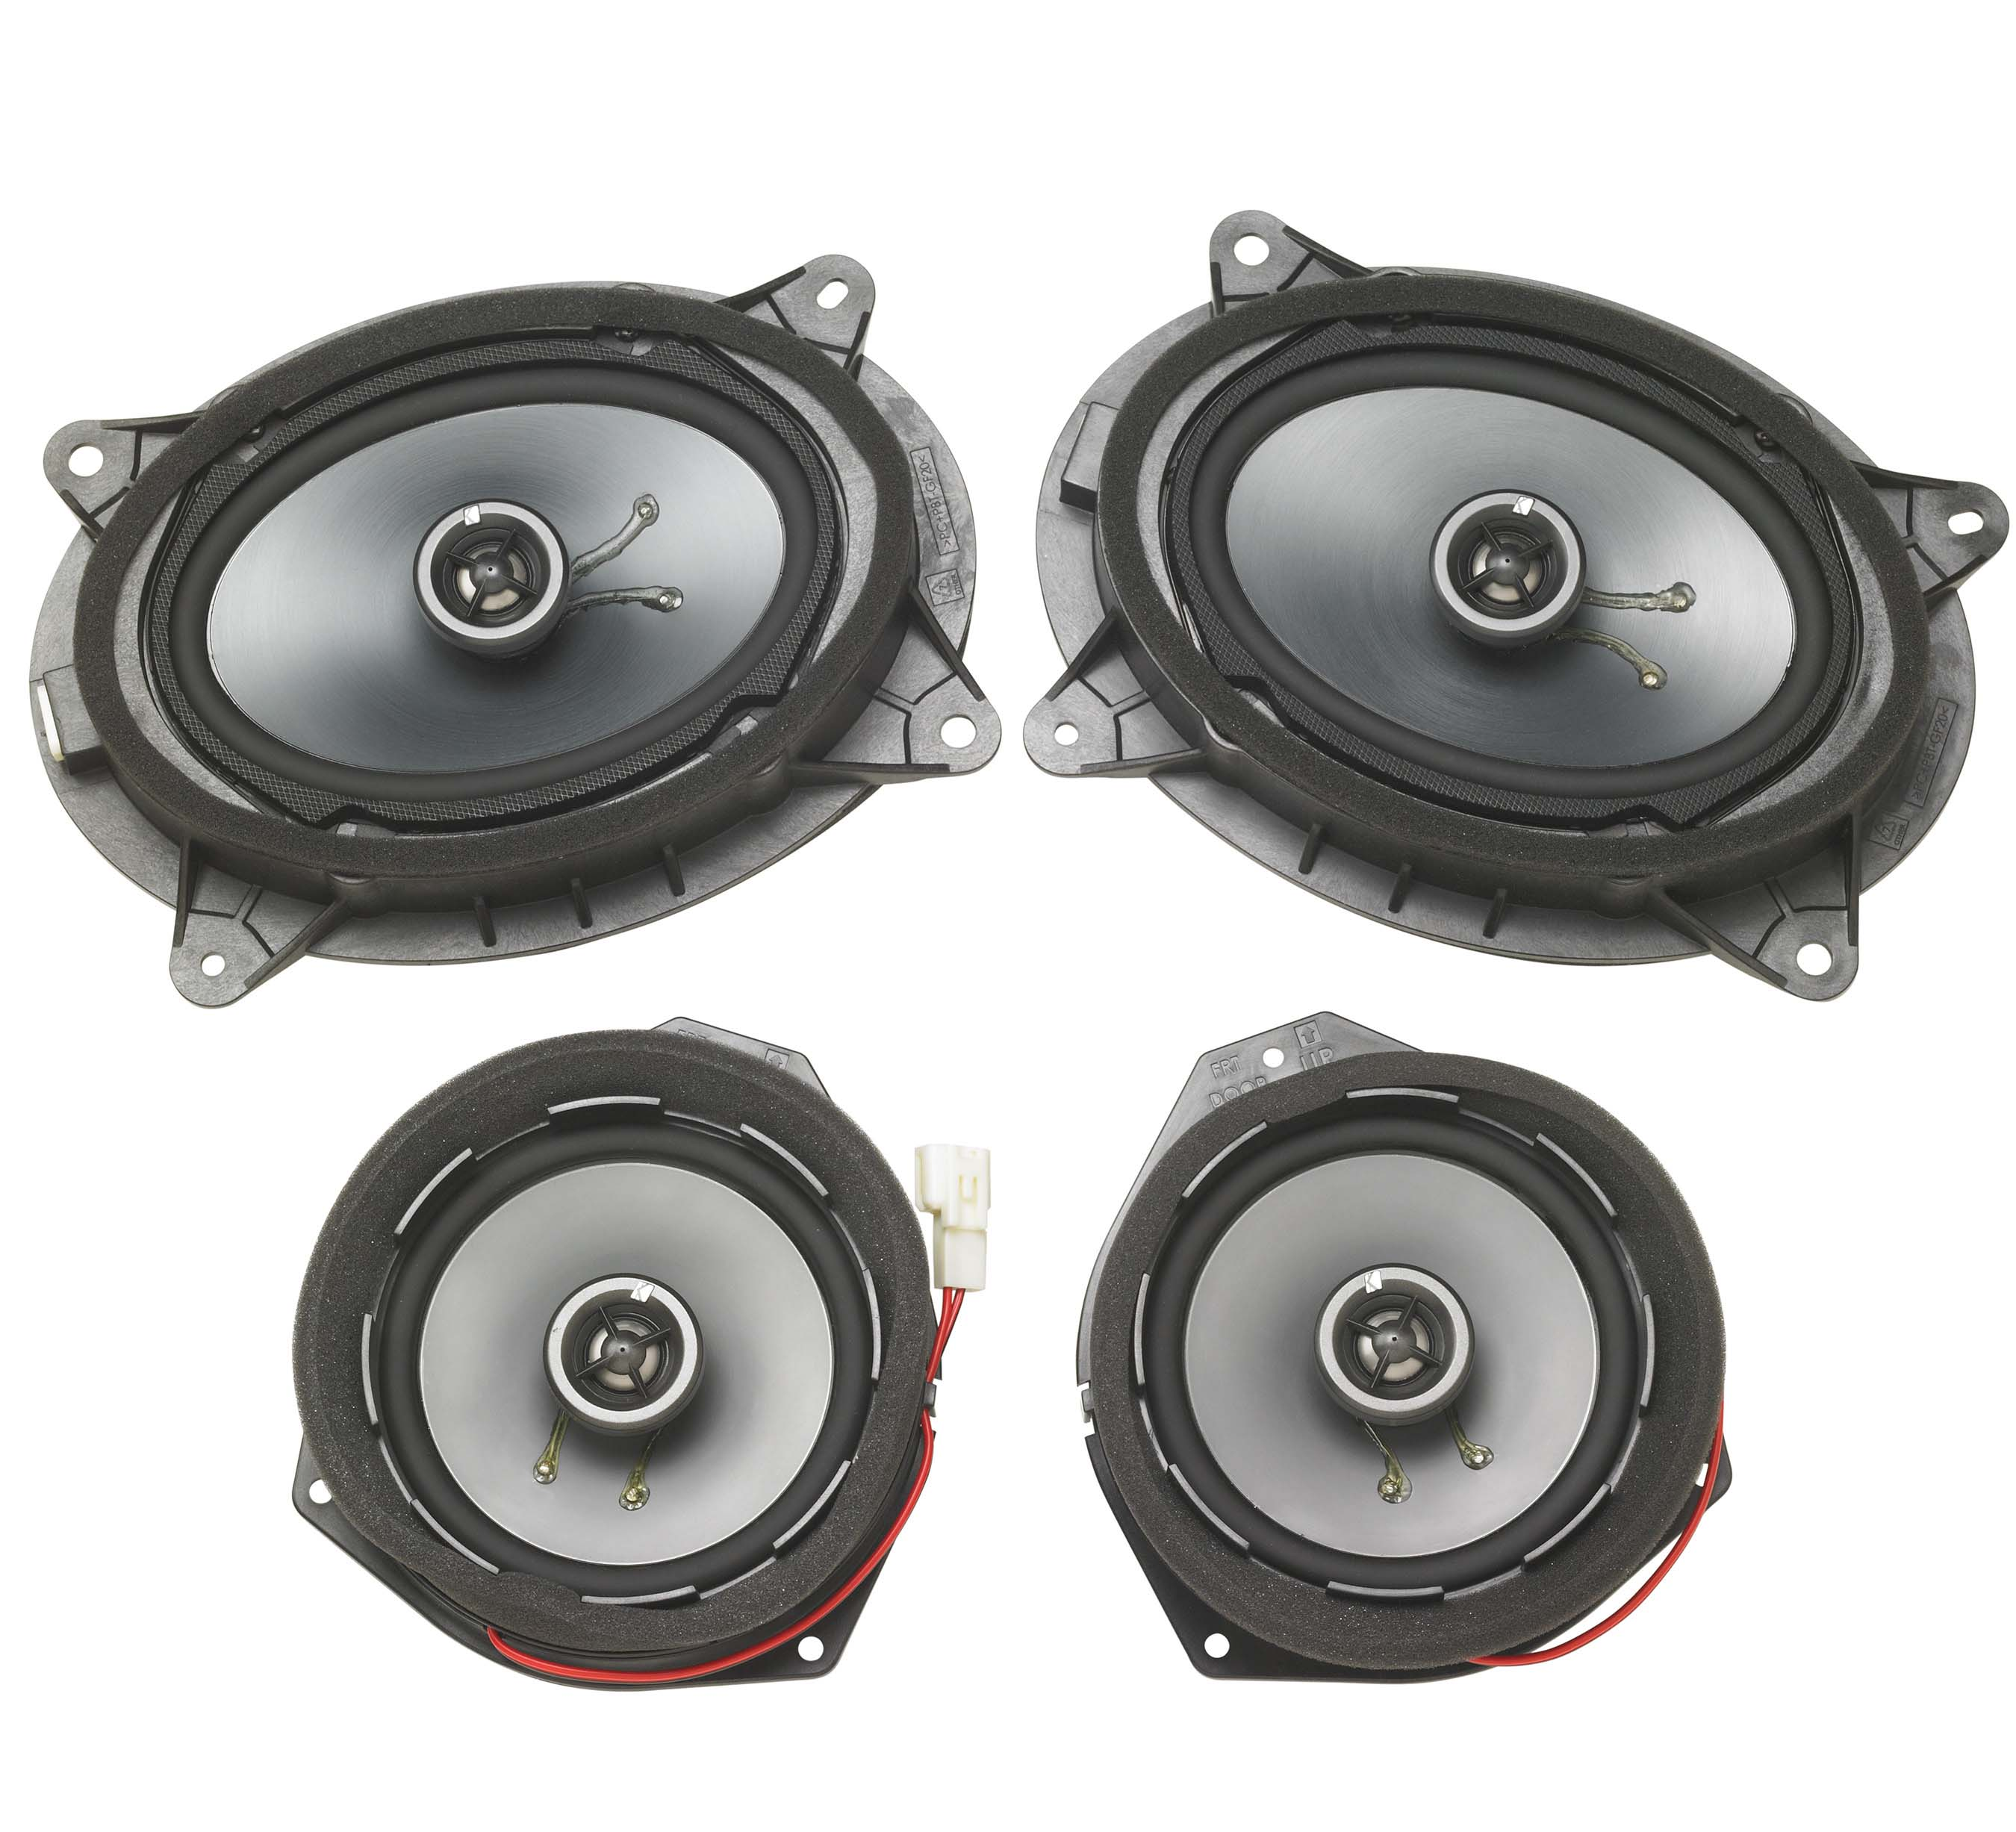 ... Parts for BRZ, Baja, Brat. so most owners get their OEM Subaru parts and accessories from an online warehouse such as CPD.Get a great deal on genuine ...